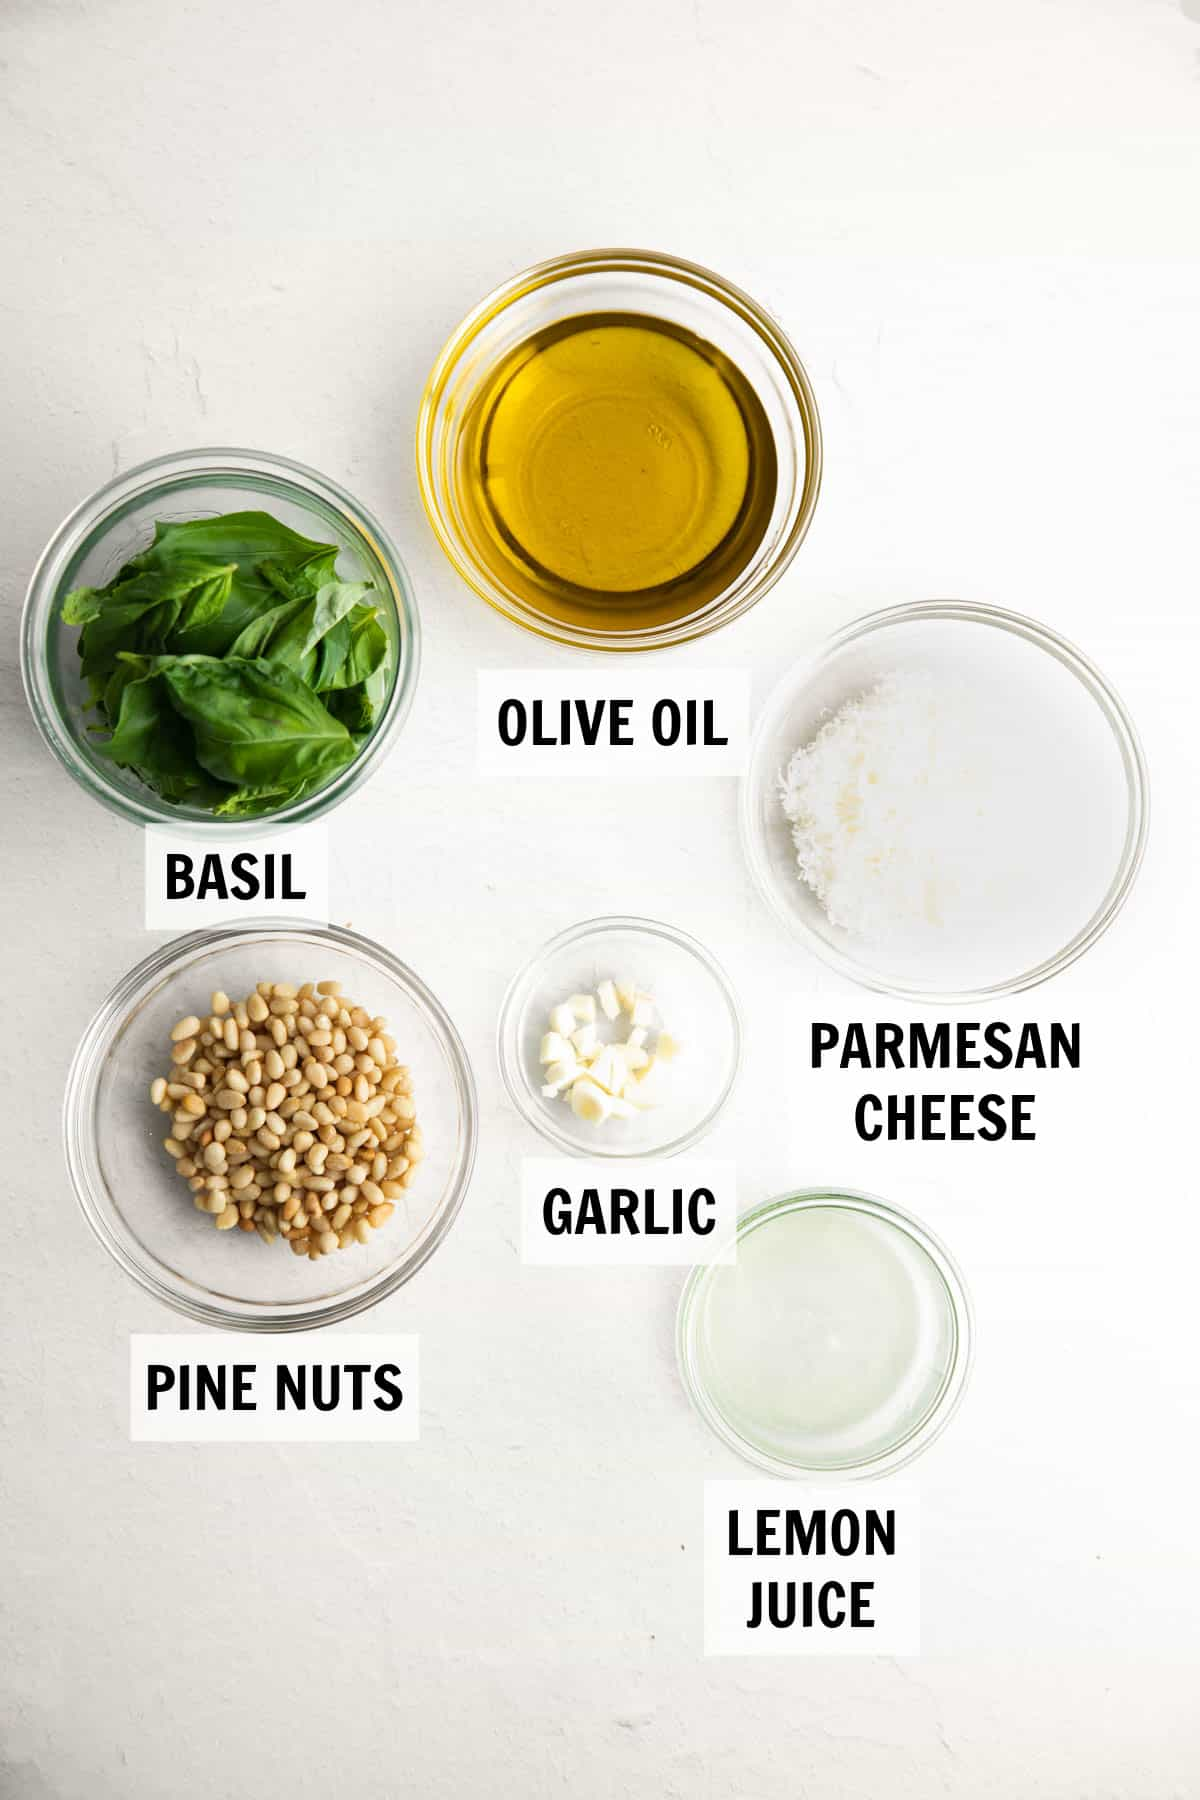 Ingredients for homemade pesto measured in glass bowls